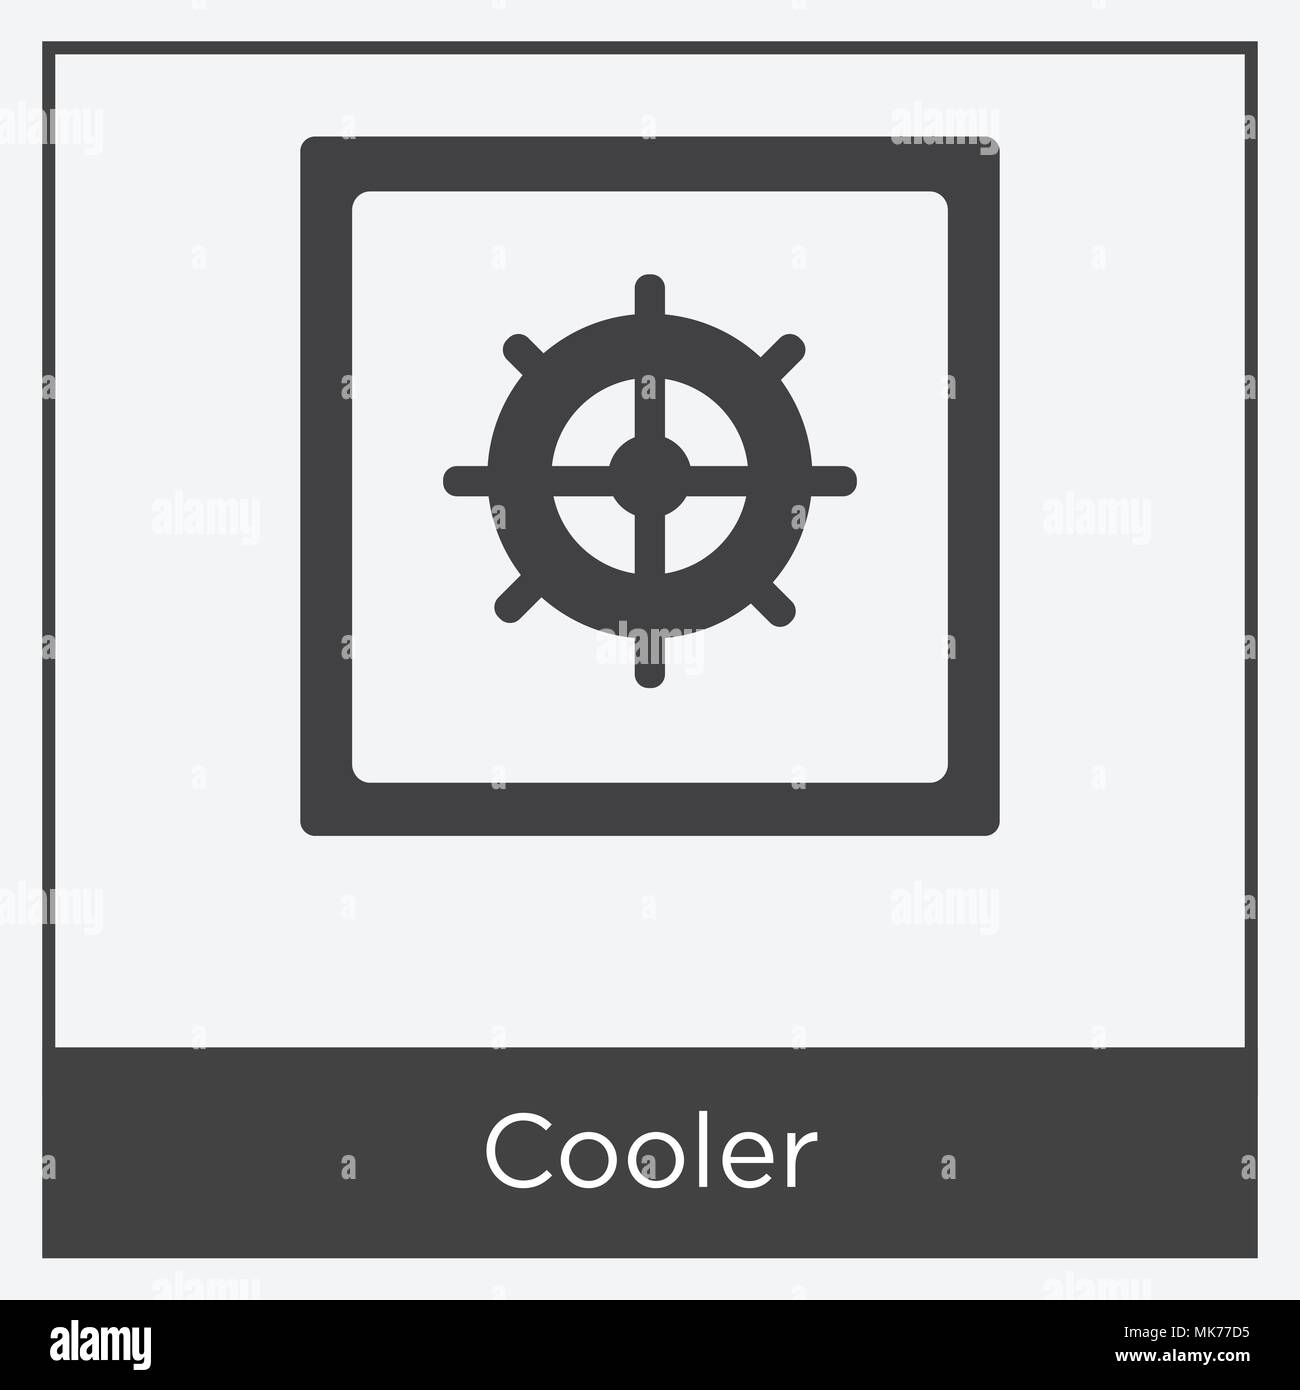 Cooler icon isolated on white background with gray frame, sign and ...